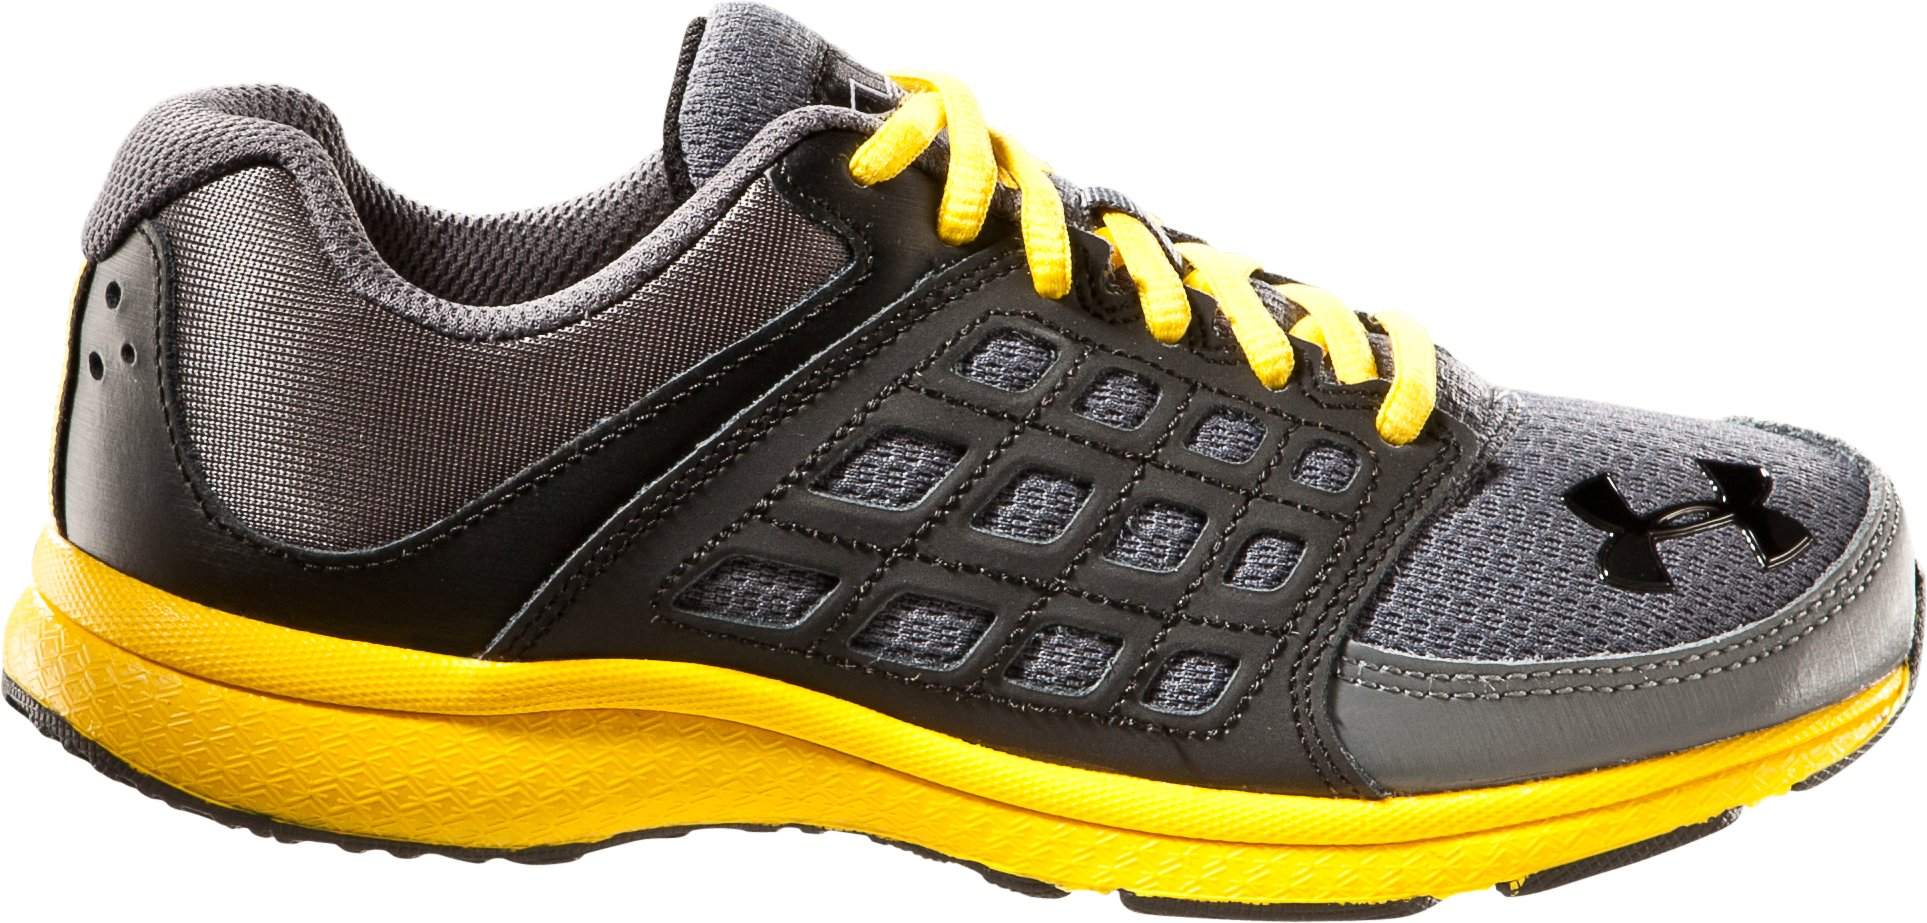 Boys' UA Connect Pre-School Running Shoes, Graphite